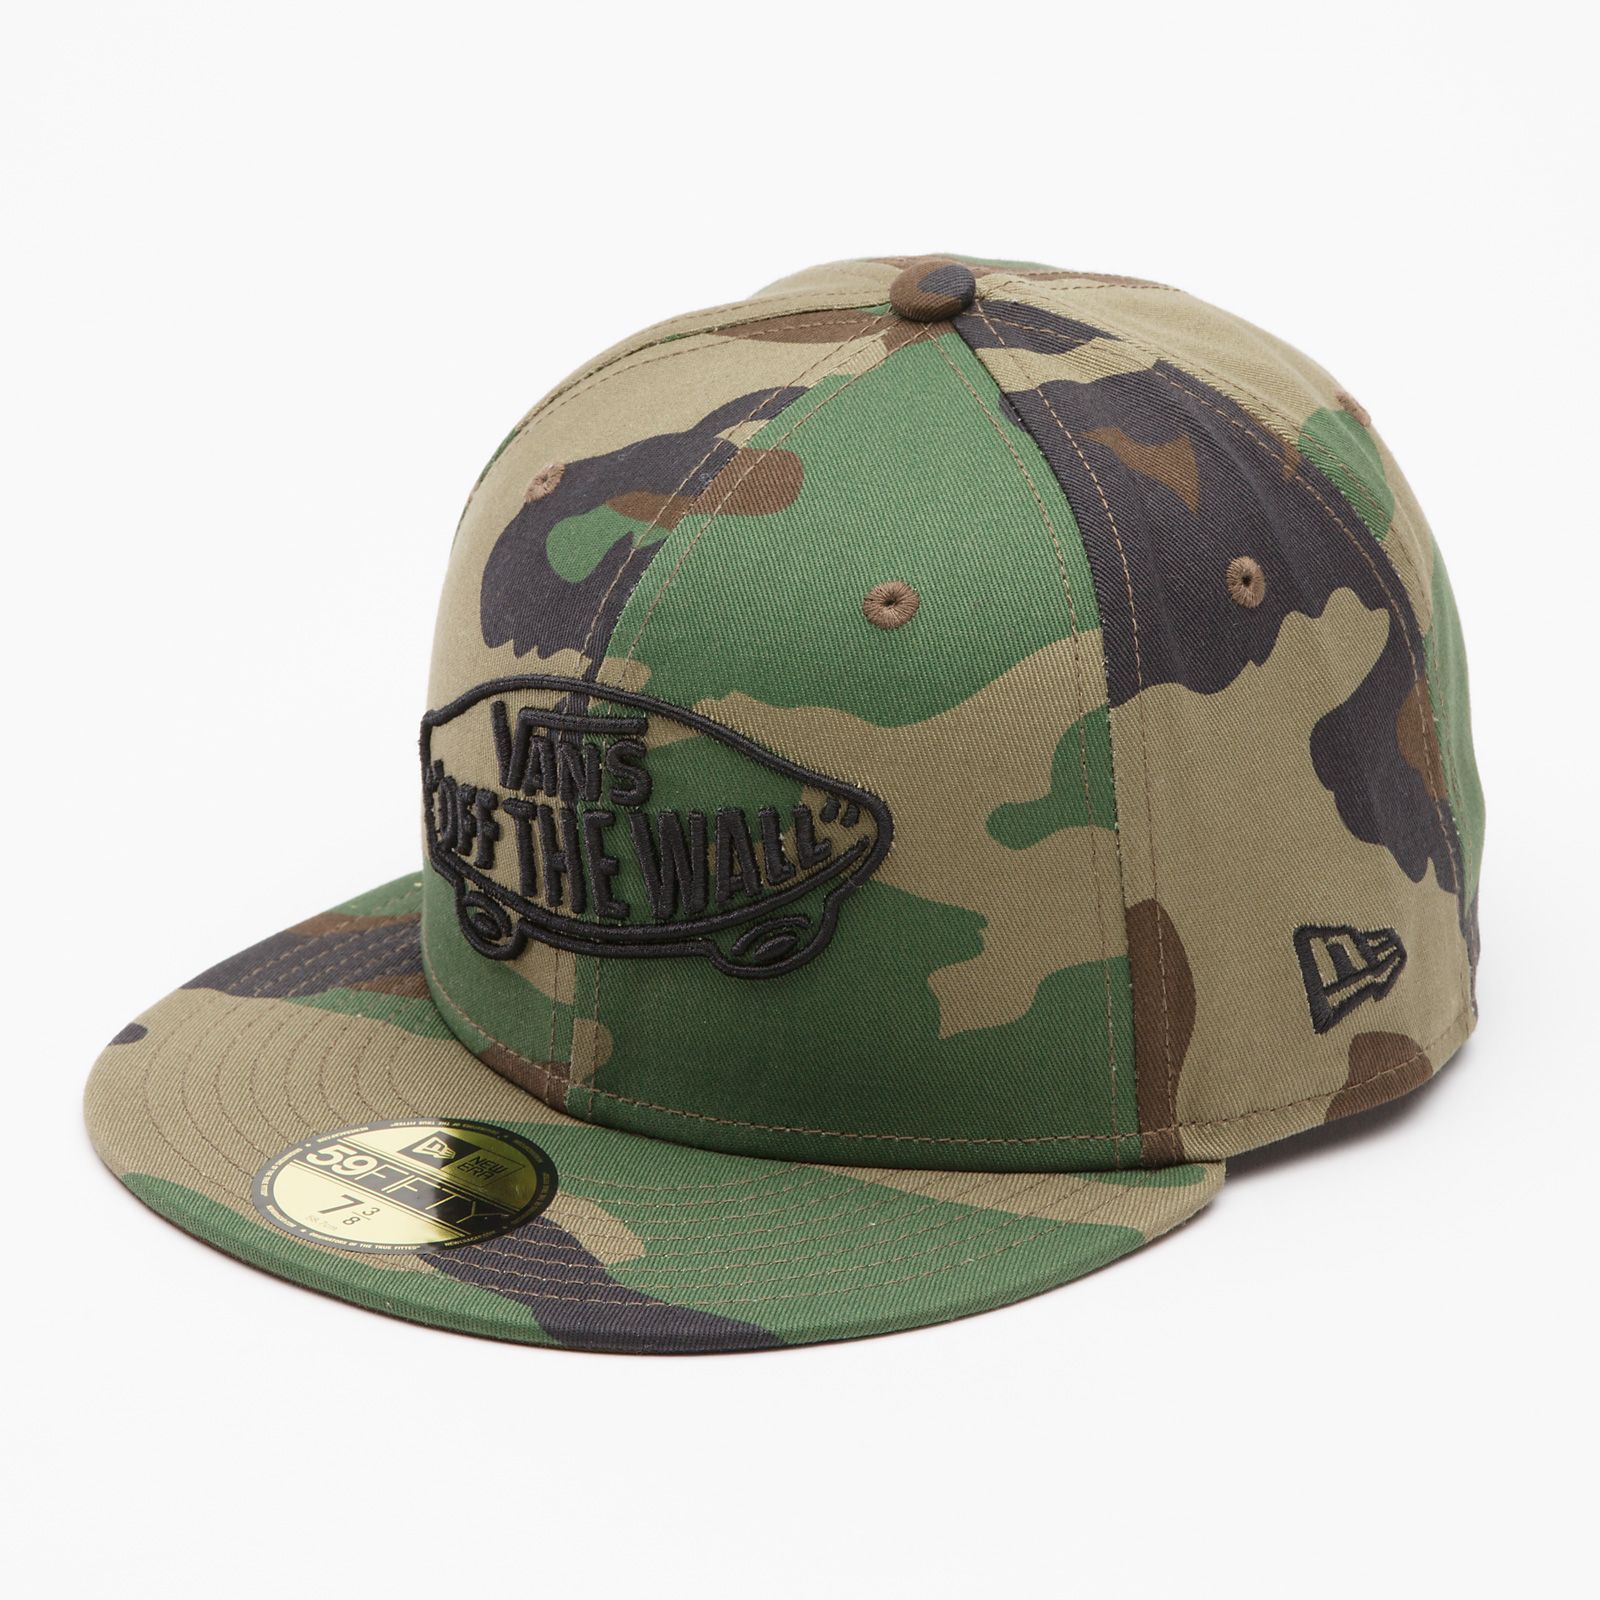 Product  Home Team New Era Hat Vans Camo 628d3b20e36